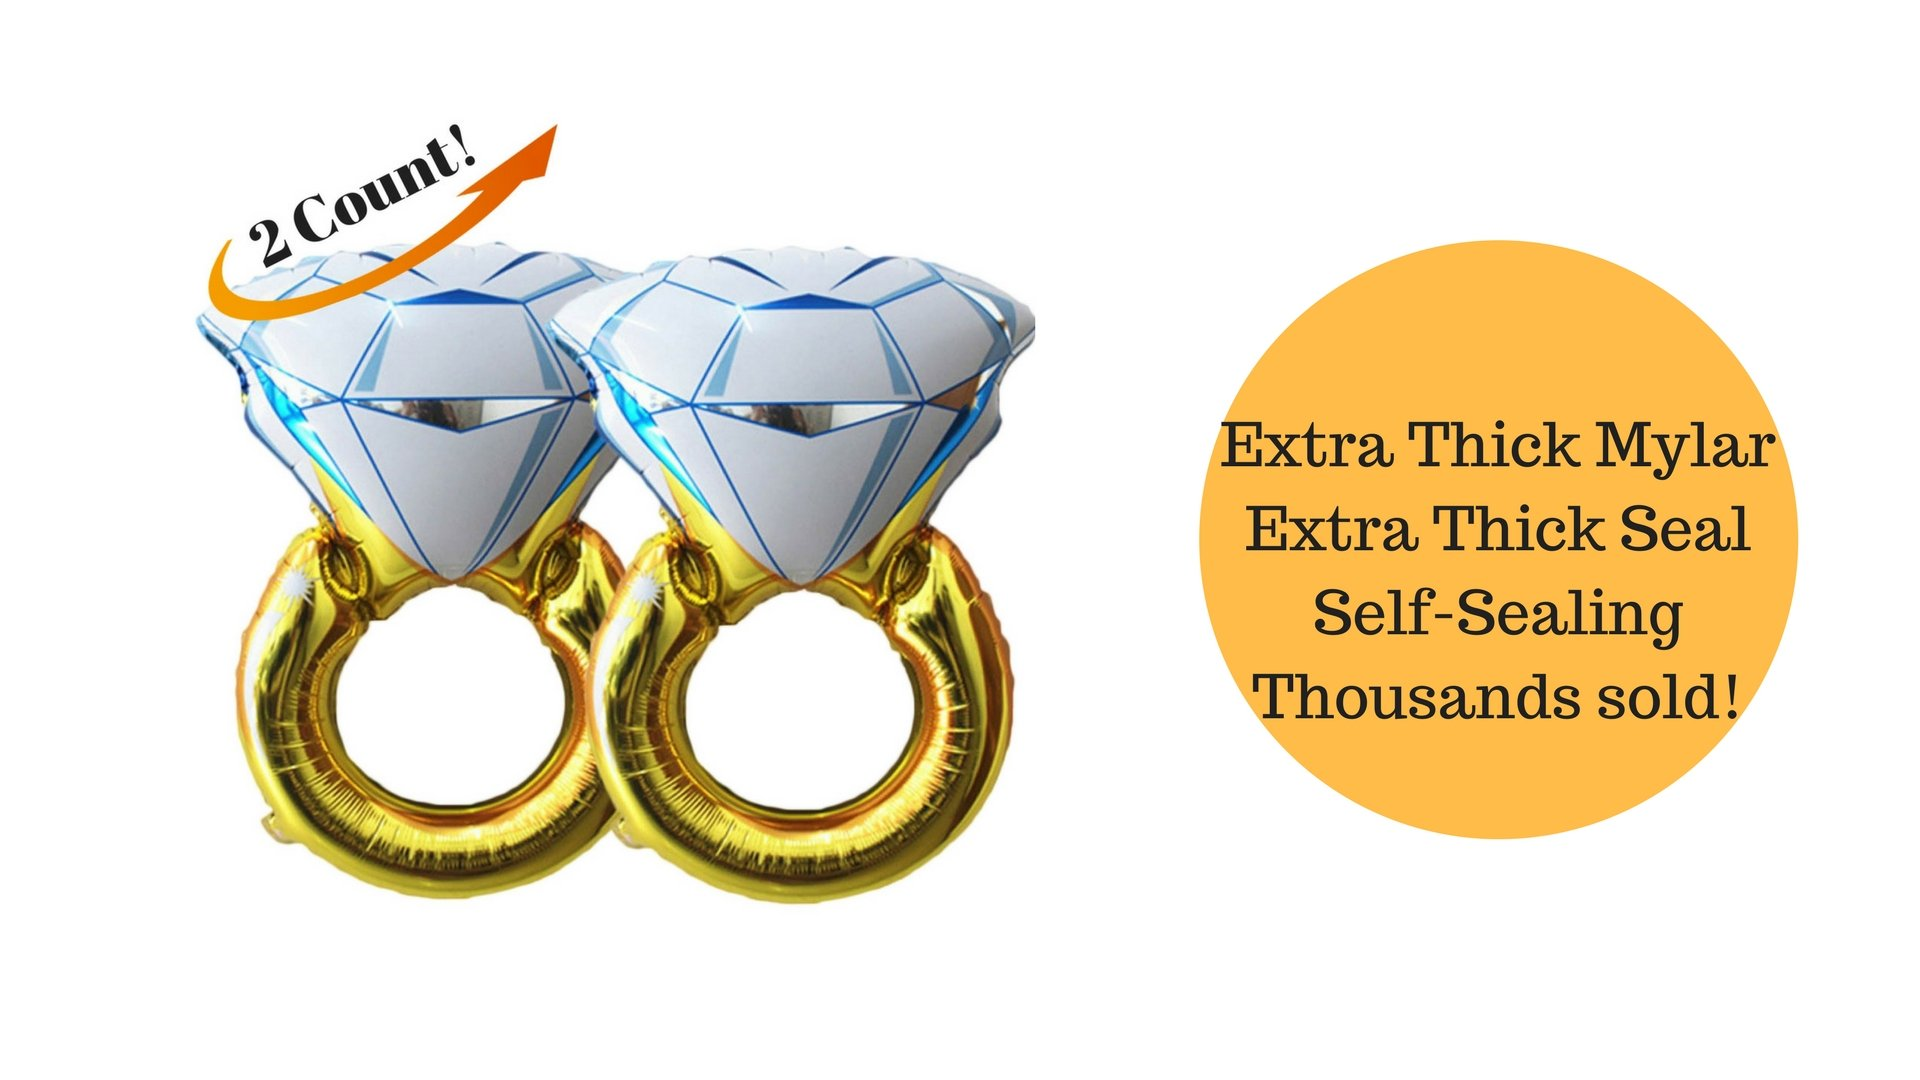 Set of 2 Giant 45'' Diamond Engagement Ring Mylar Balloons for Proposal Vow Renewal Valentine's Day Bridal Shower Wedding Bachelorette Parties Decoration. Huge Bling Favor. Extra Large Party Statement. by BlankIt! Concepts (Image #2)